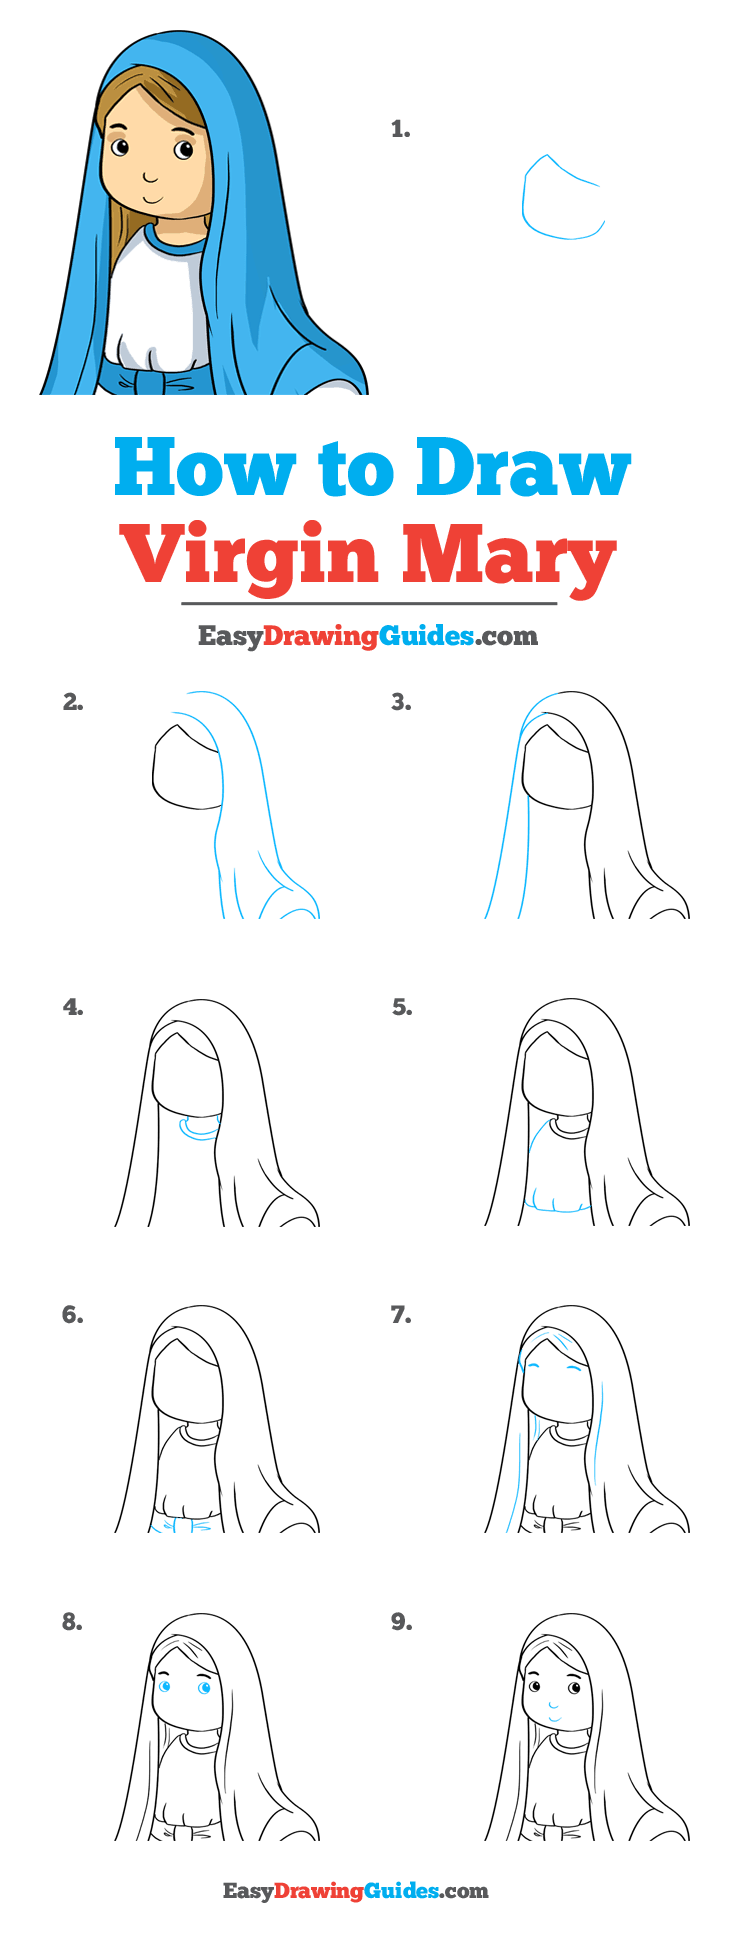 How to Draw Virgin Mary